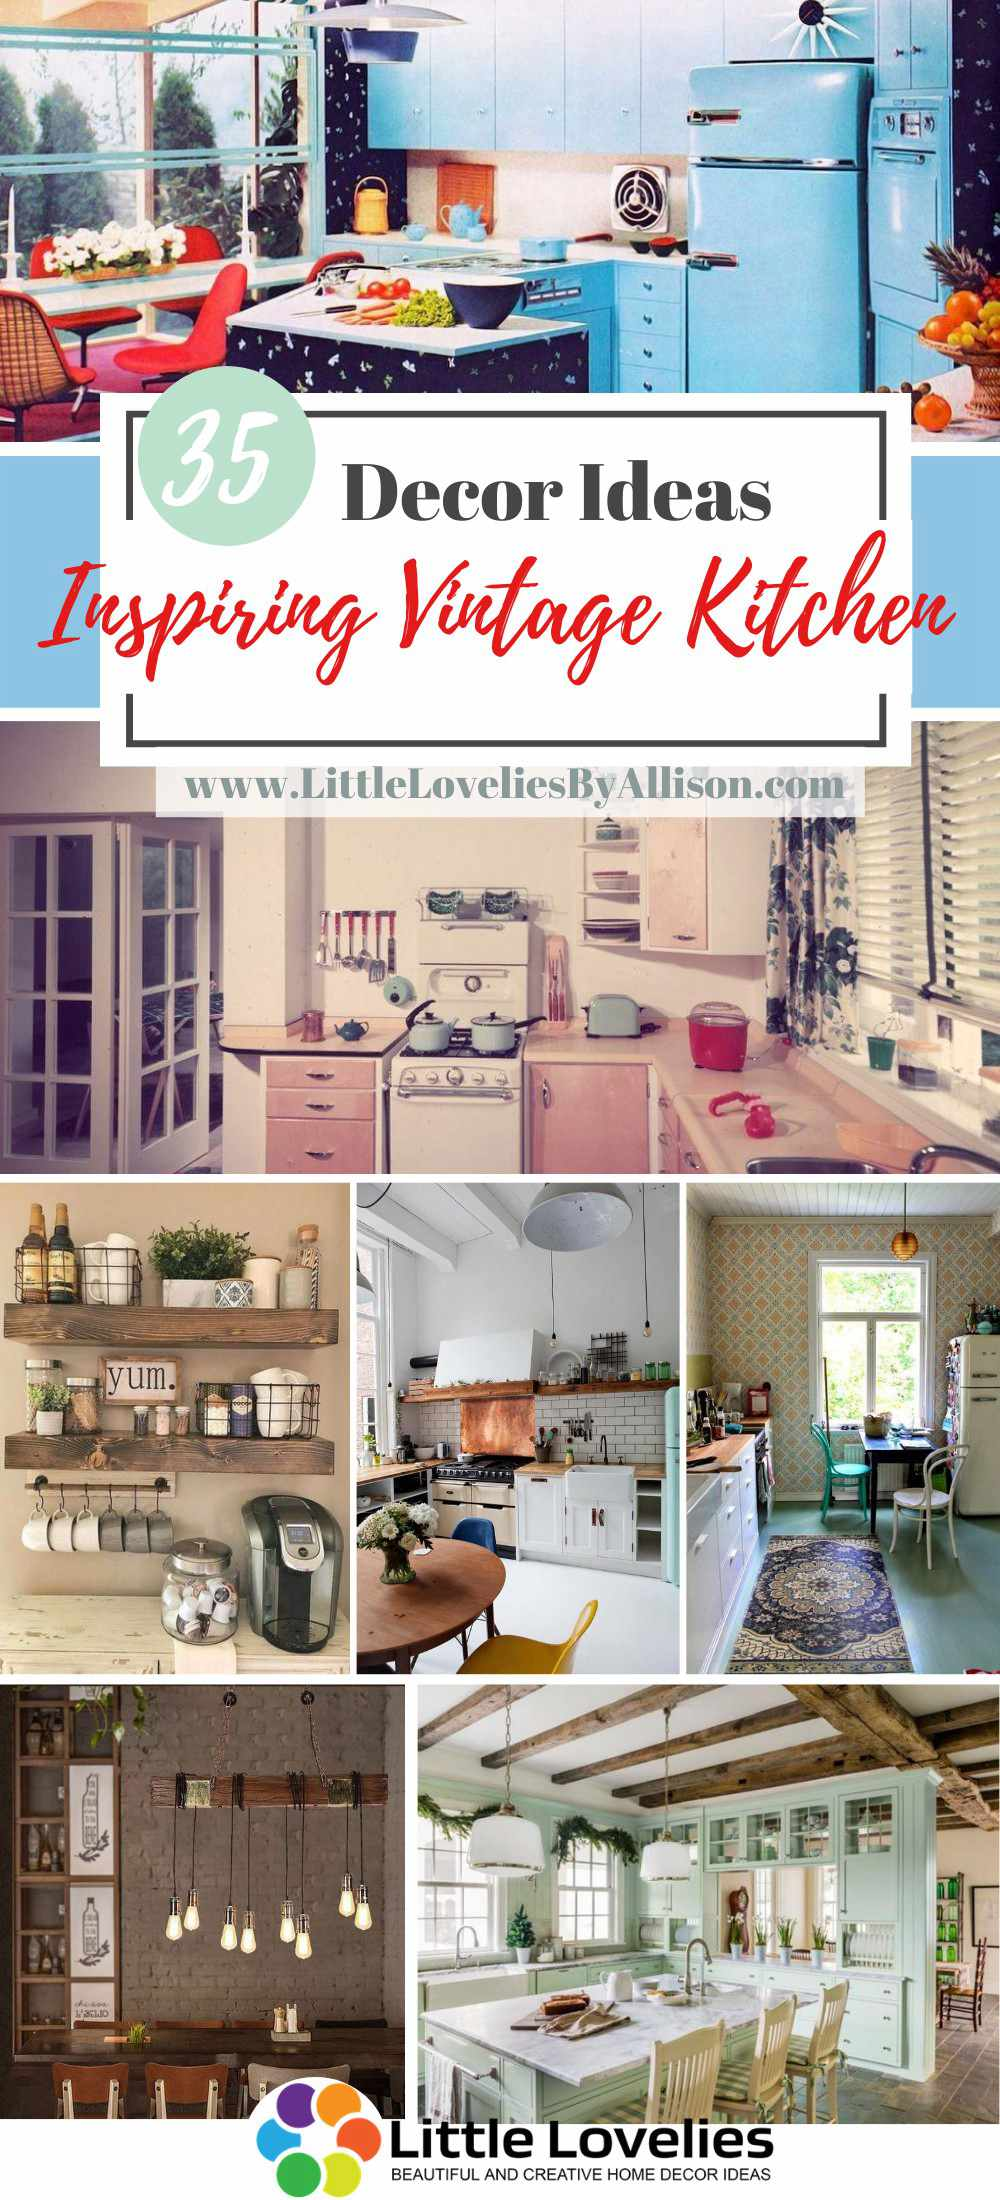 Inspiring Vintage Kitchen Decor Ideas